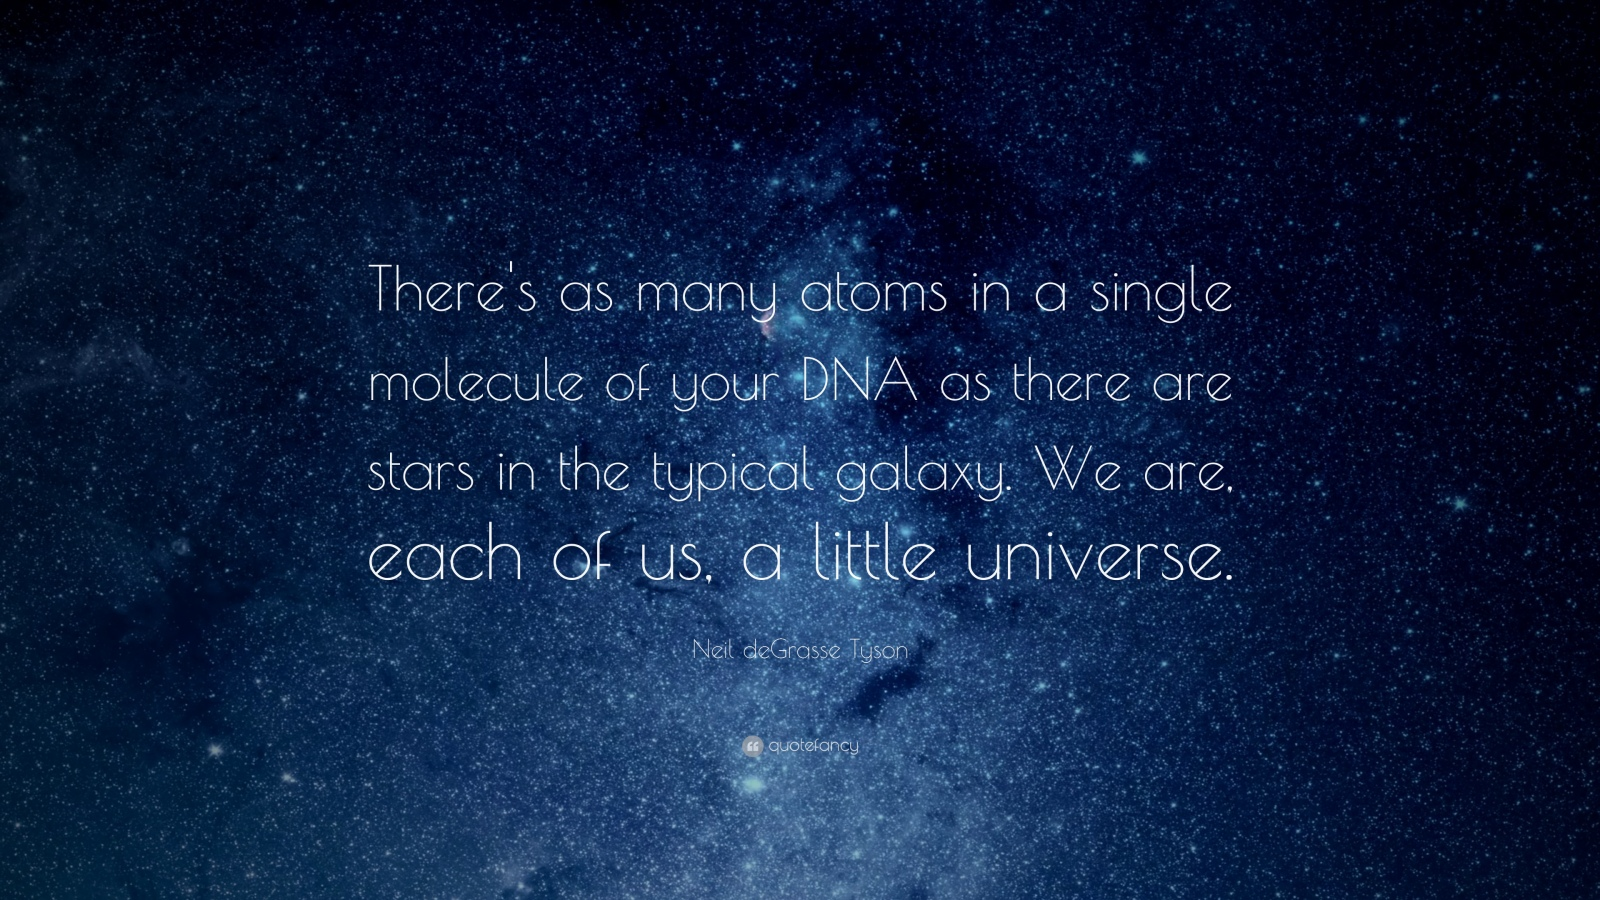 8246-Neil-deGrasse-Tyson-Quote-There-s-as-many-atoms-in-a-single.jpg